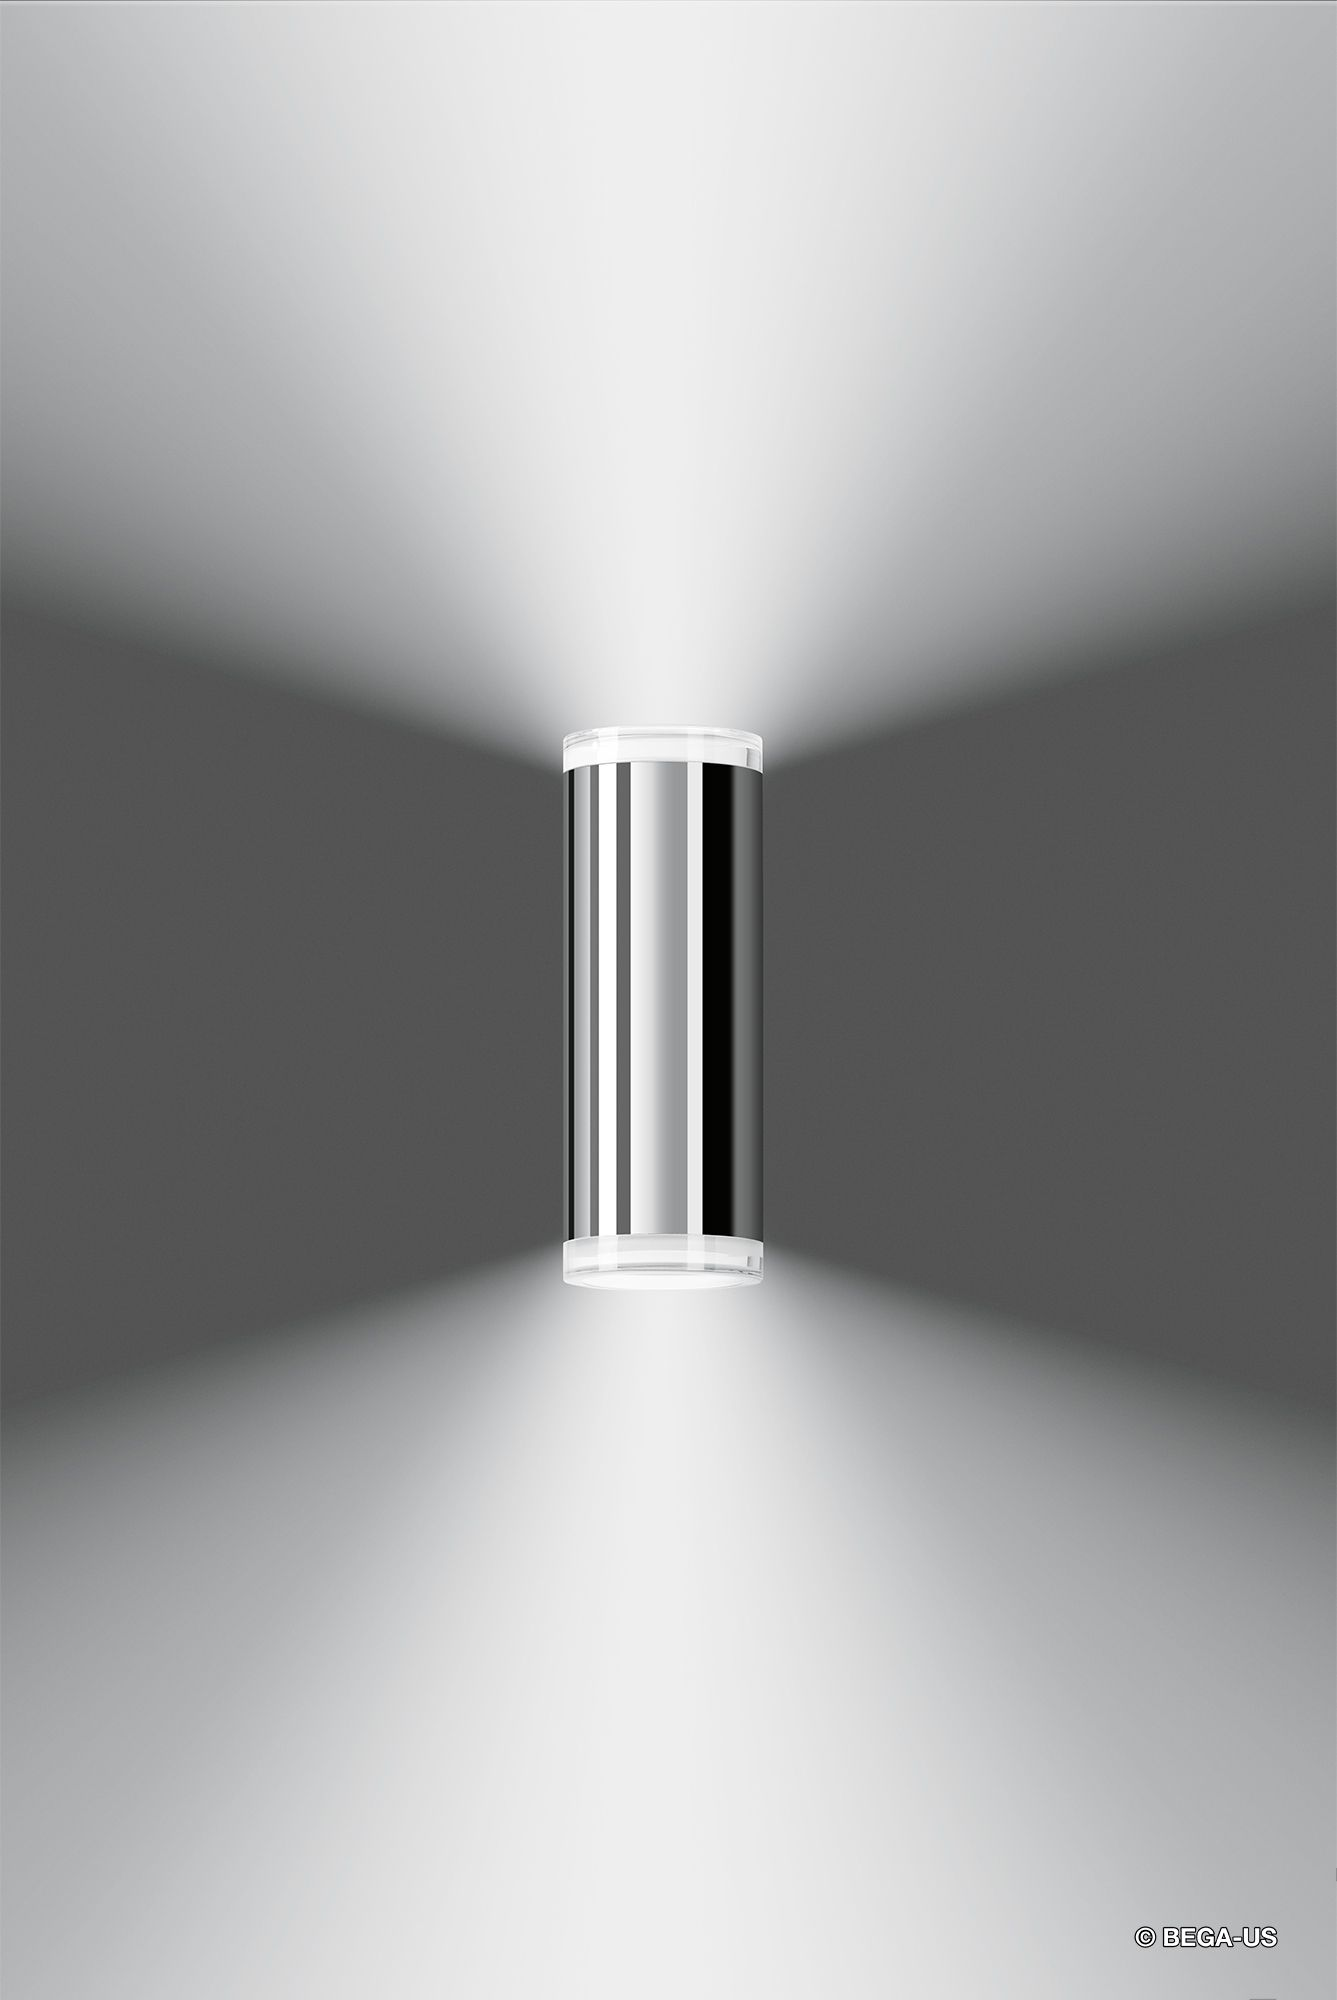 Surface Wall W Up And Down Lighting Wall Mounted Led And Metal Halide Cylinder Luminaires With A Symmetrical Up